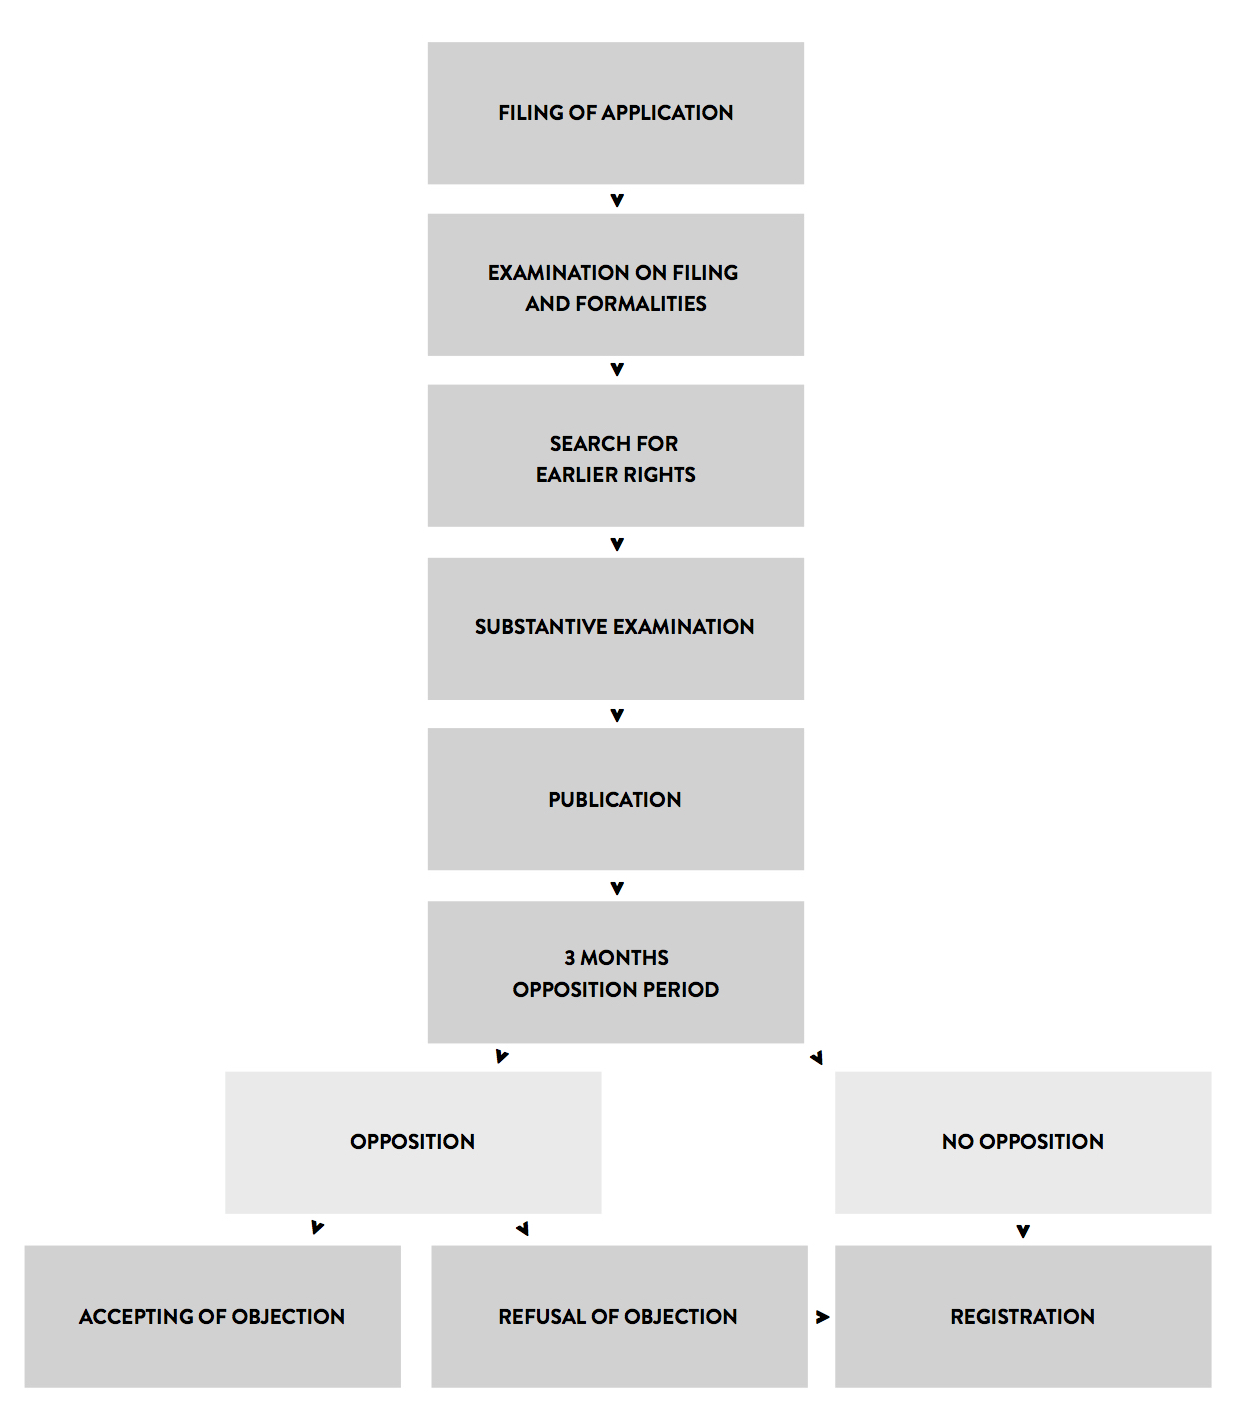 You can download the flowchart in PDF version by clicking on the image.